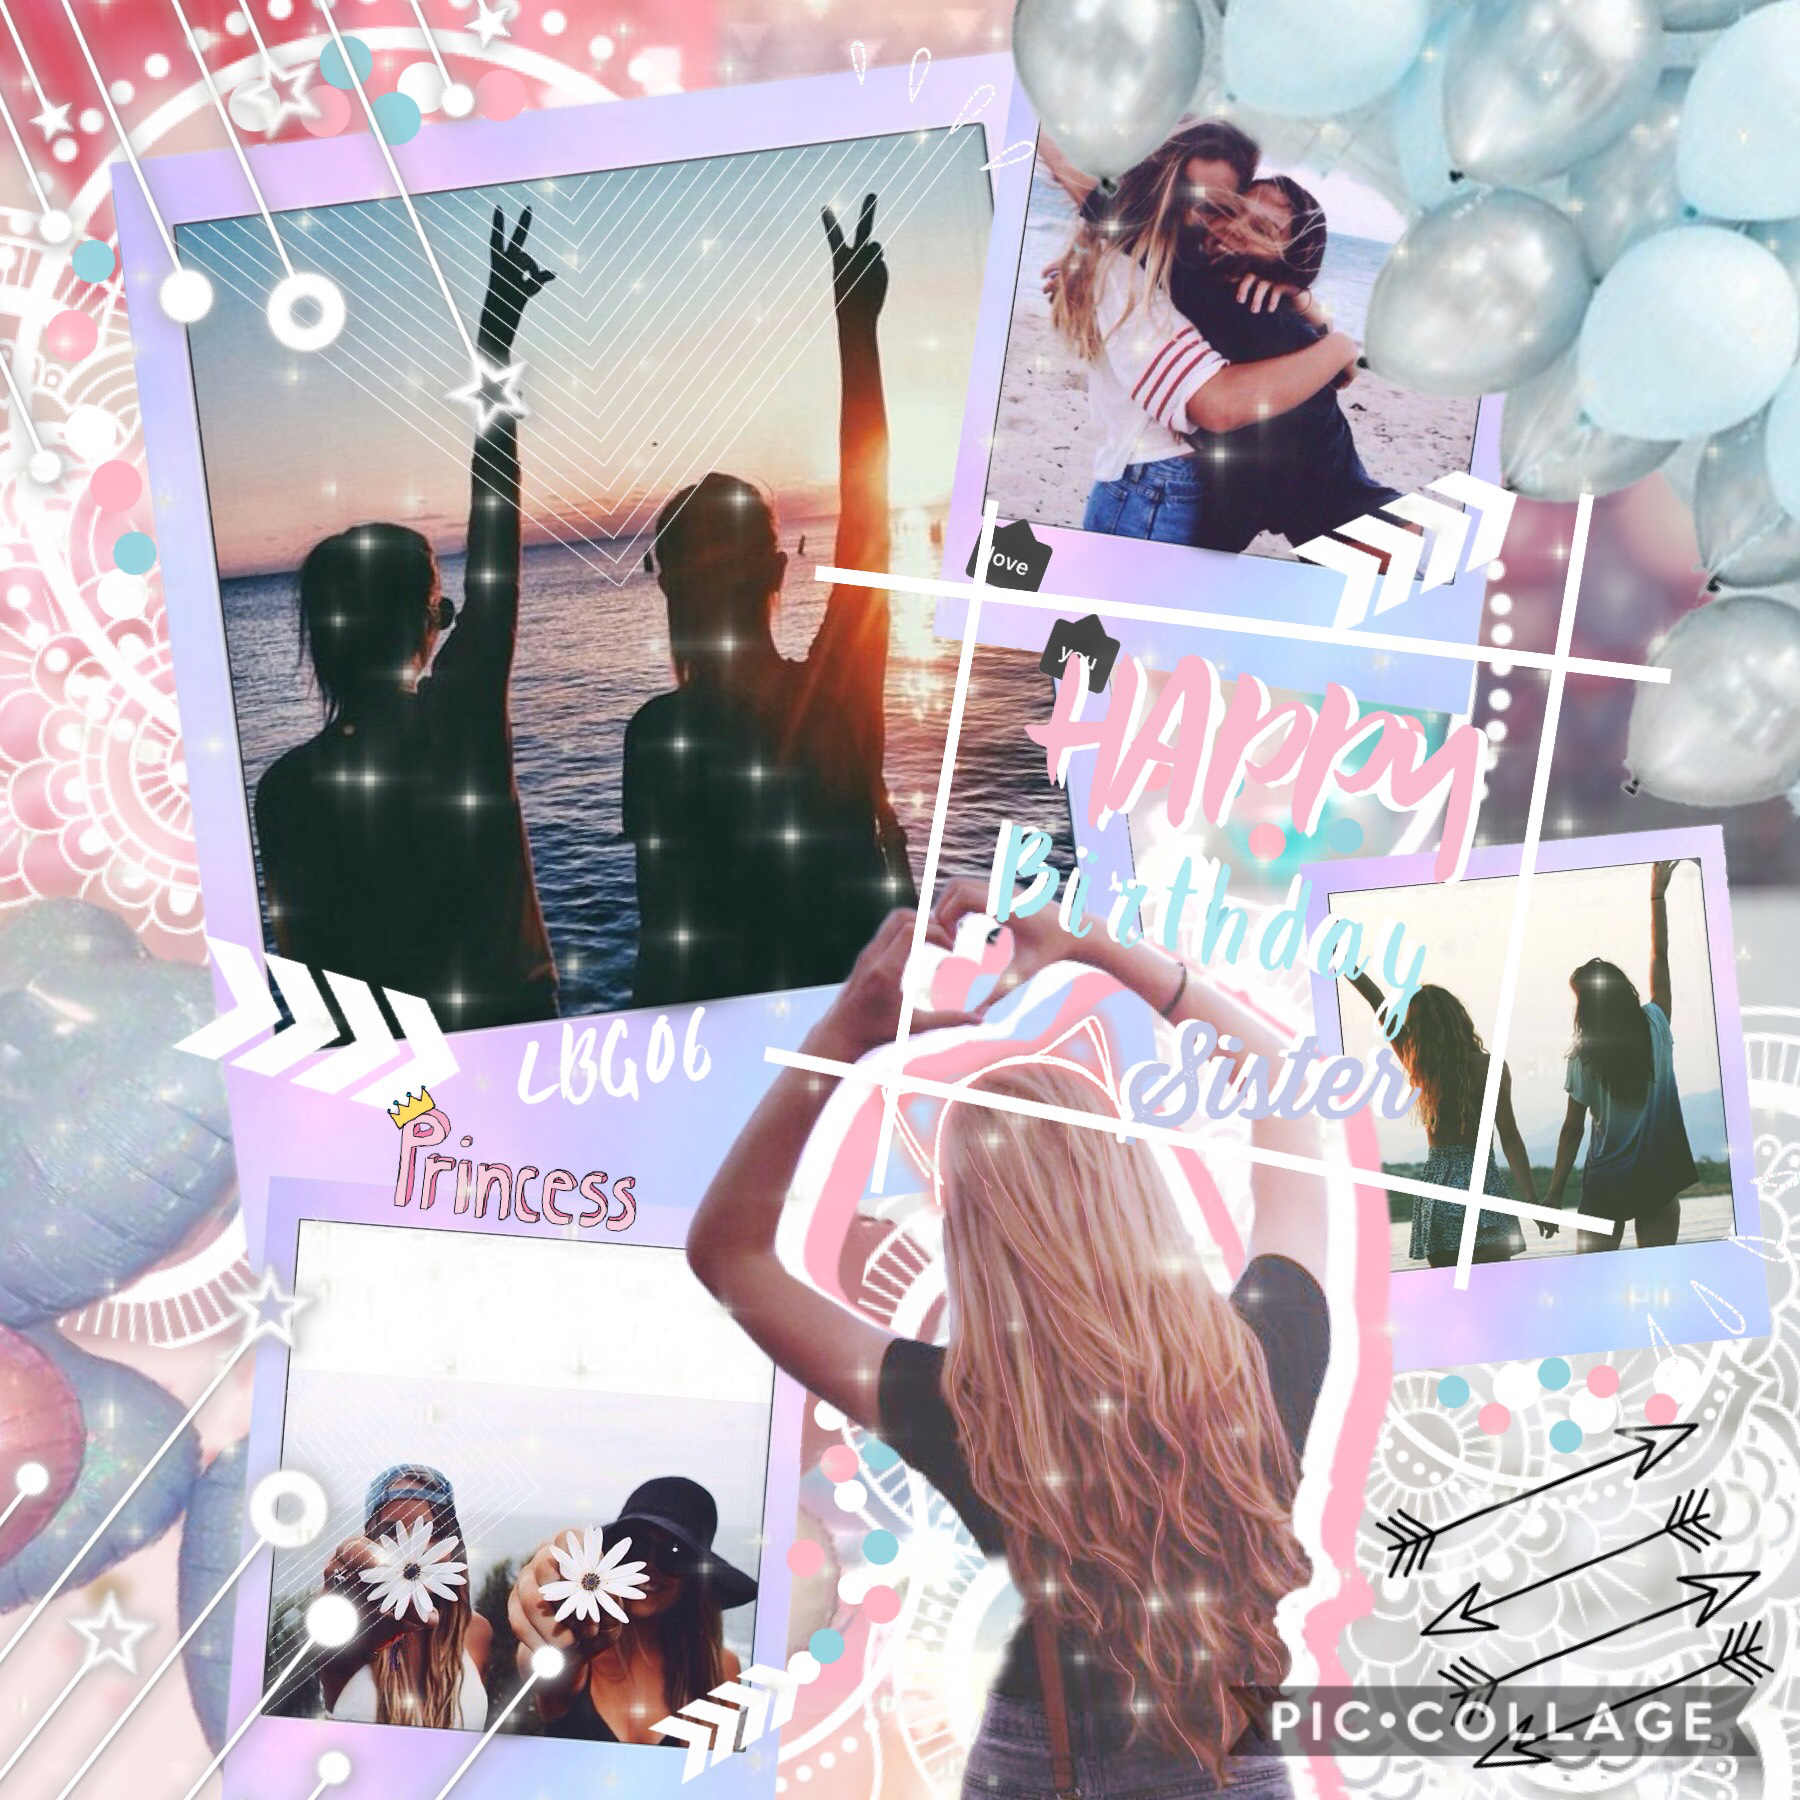 💕TAPPP💕  YAY ITS MY LITTLE SISTER'S BIRTHDAYYYYYY!!!!! 💕💗🧁🎉🎈🎀😘   Q// favorite month of the year? A// February Bc it's my birthday month and July because it's the middle of summer!! 💕  XOXO💕🧁💗